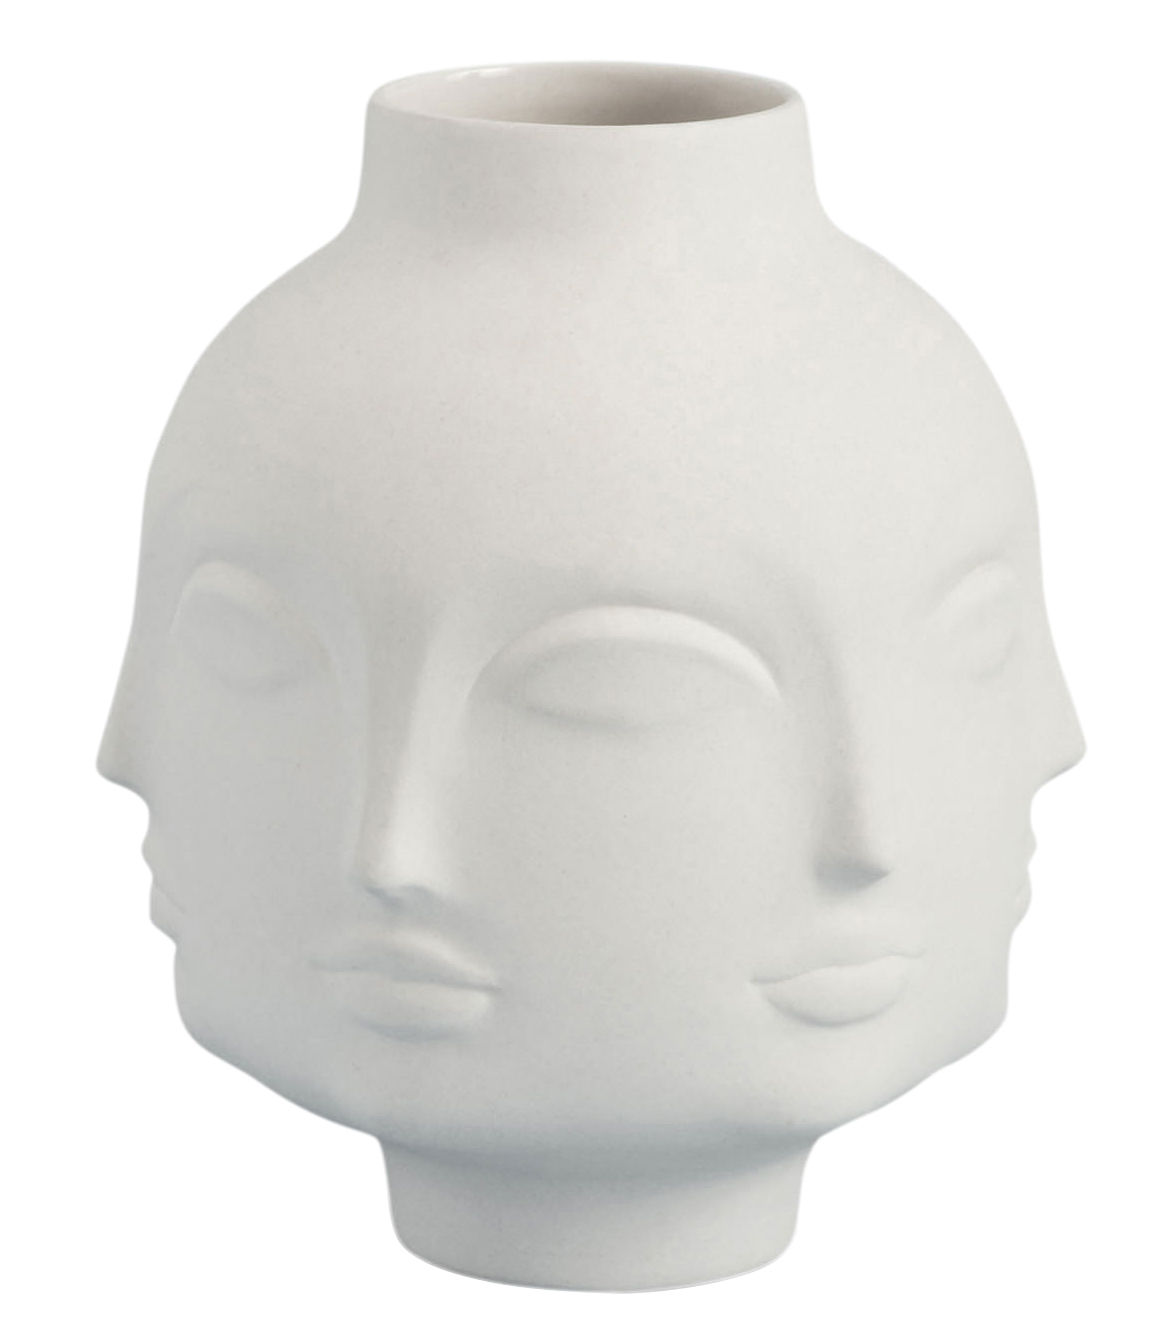 Decoration - Vases - Dora Maar Vase by Jonathan Adler - White / Dora Maar - China